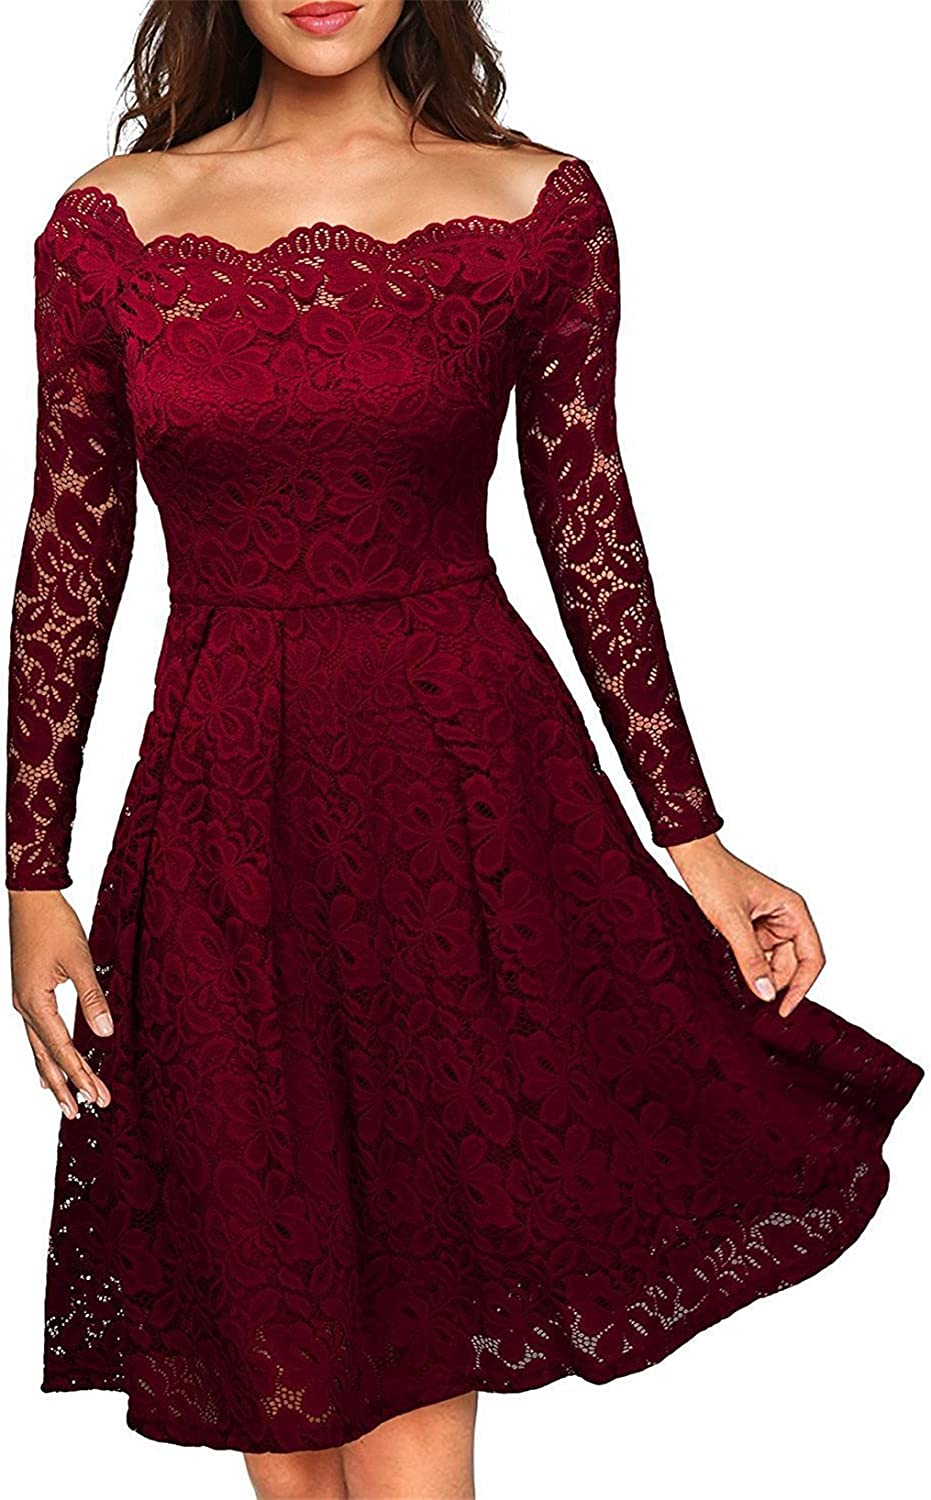 Allonly Women Elegant Sexy Off Shoulder Board Collar Lace Up Floral Long Sleeve Flouncing Dress Cocktail